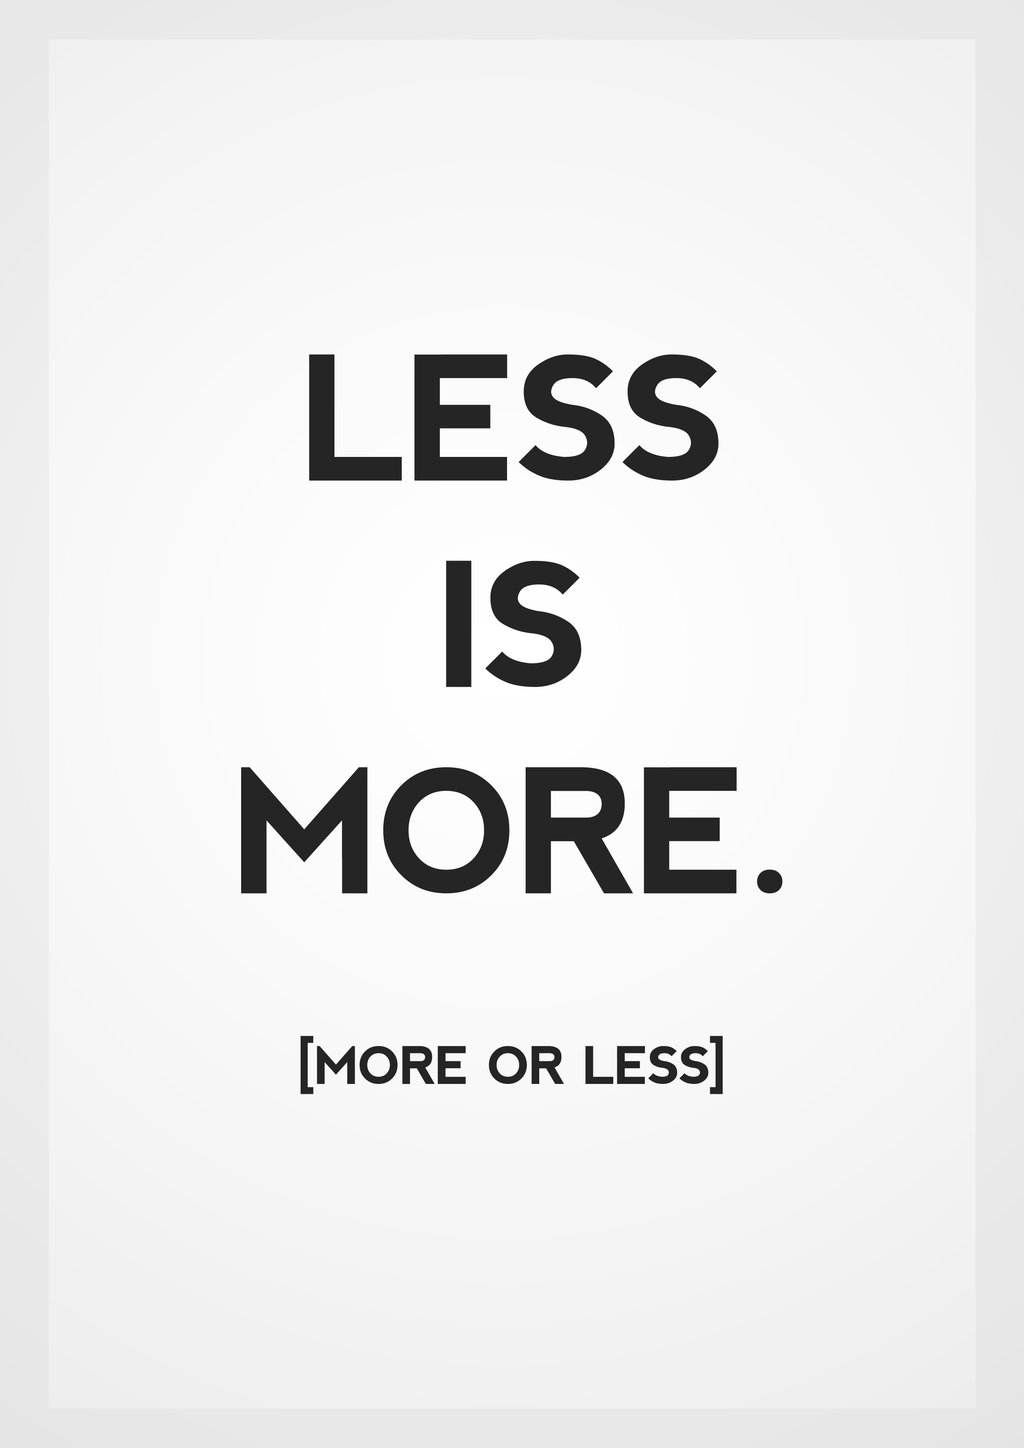 Less is More        Less worry….More faith  Less complaining….More gratitude  Less talking….More doing  Less looking forward or backward…More right here, right now  Bring more of what you want into your life!   image source:    nettiesramblings.blogspot.com